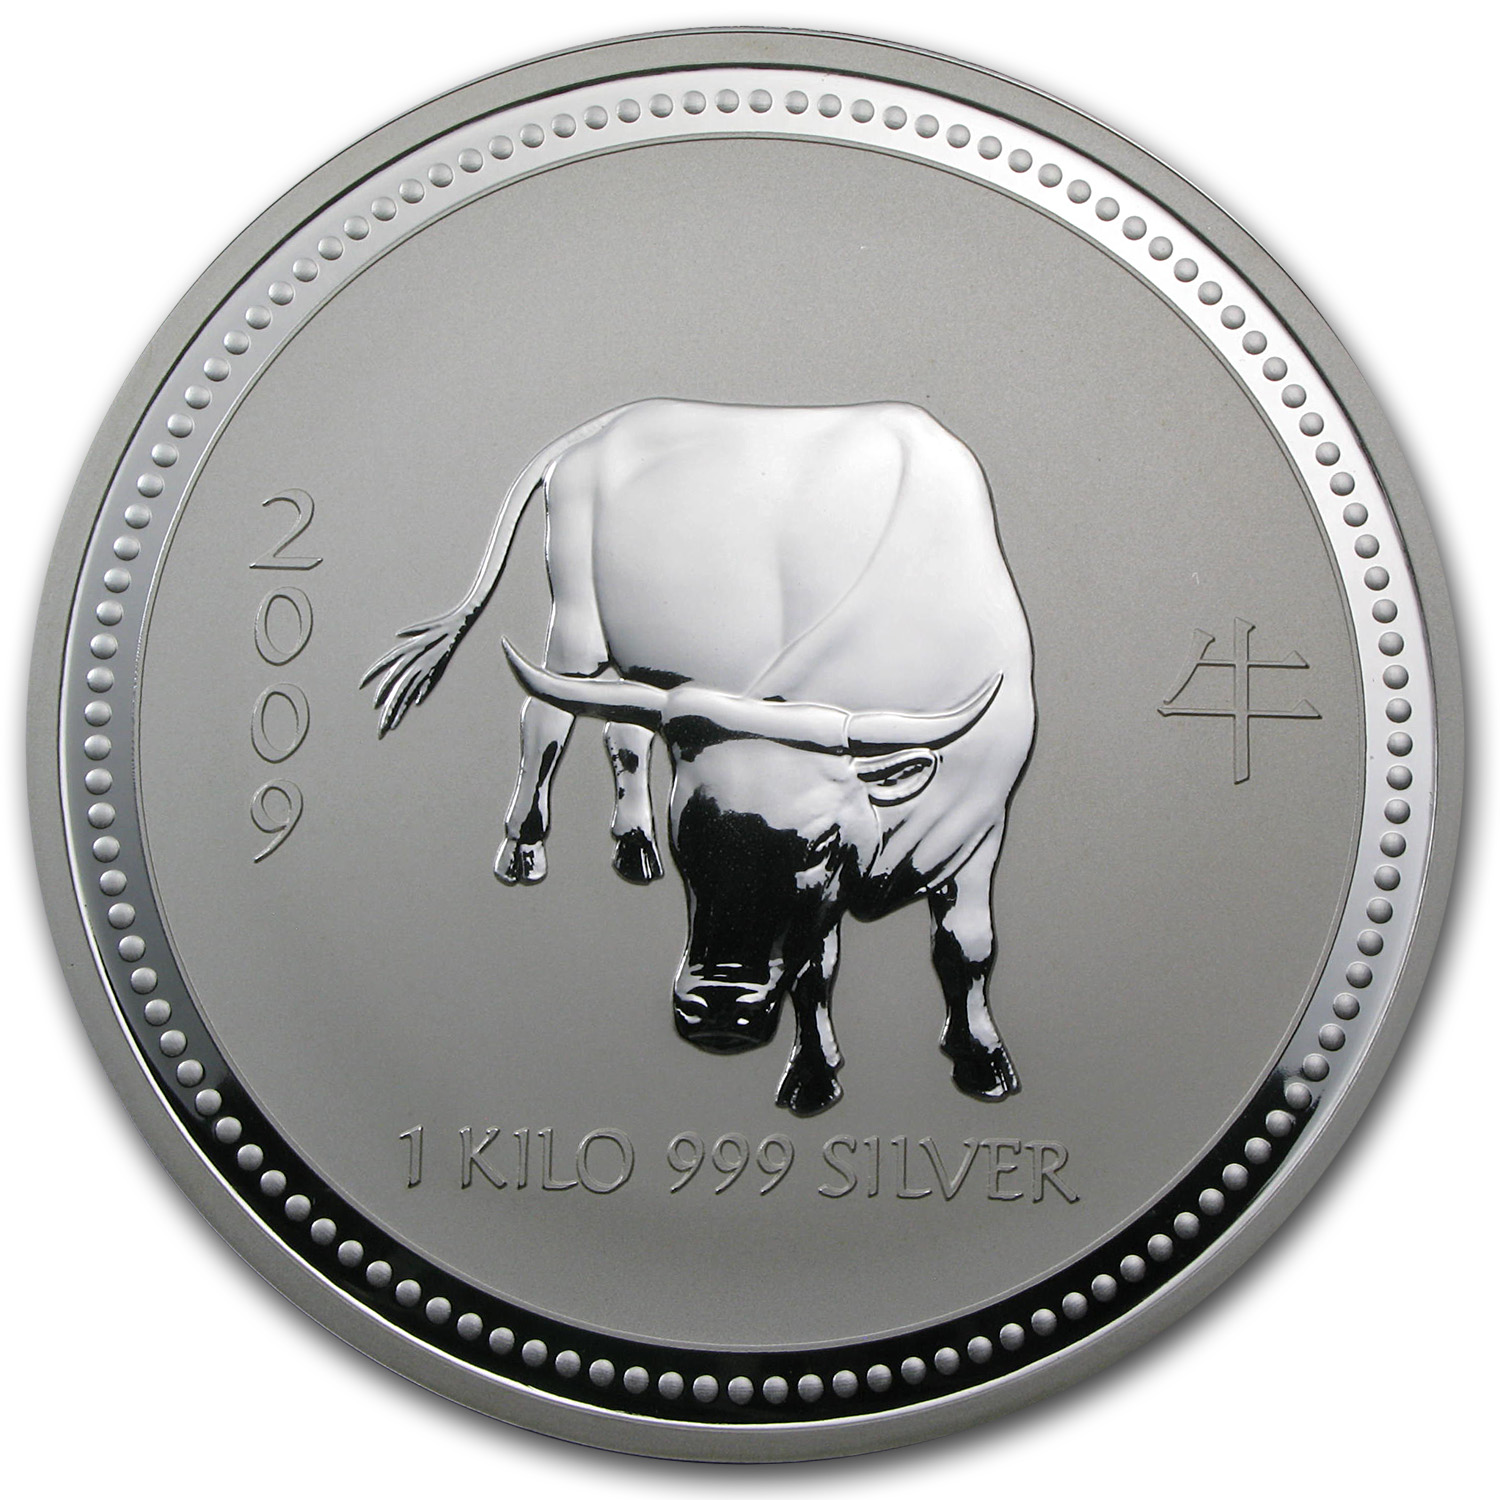 2009 1 kilo Silver Lunar Year of the Ox (Series I)